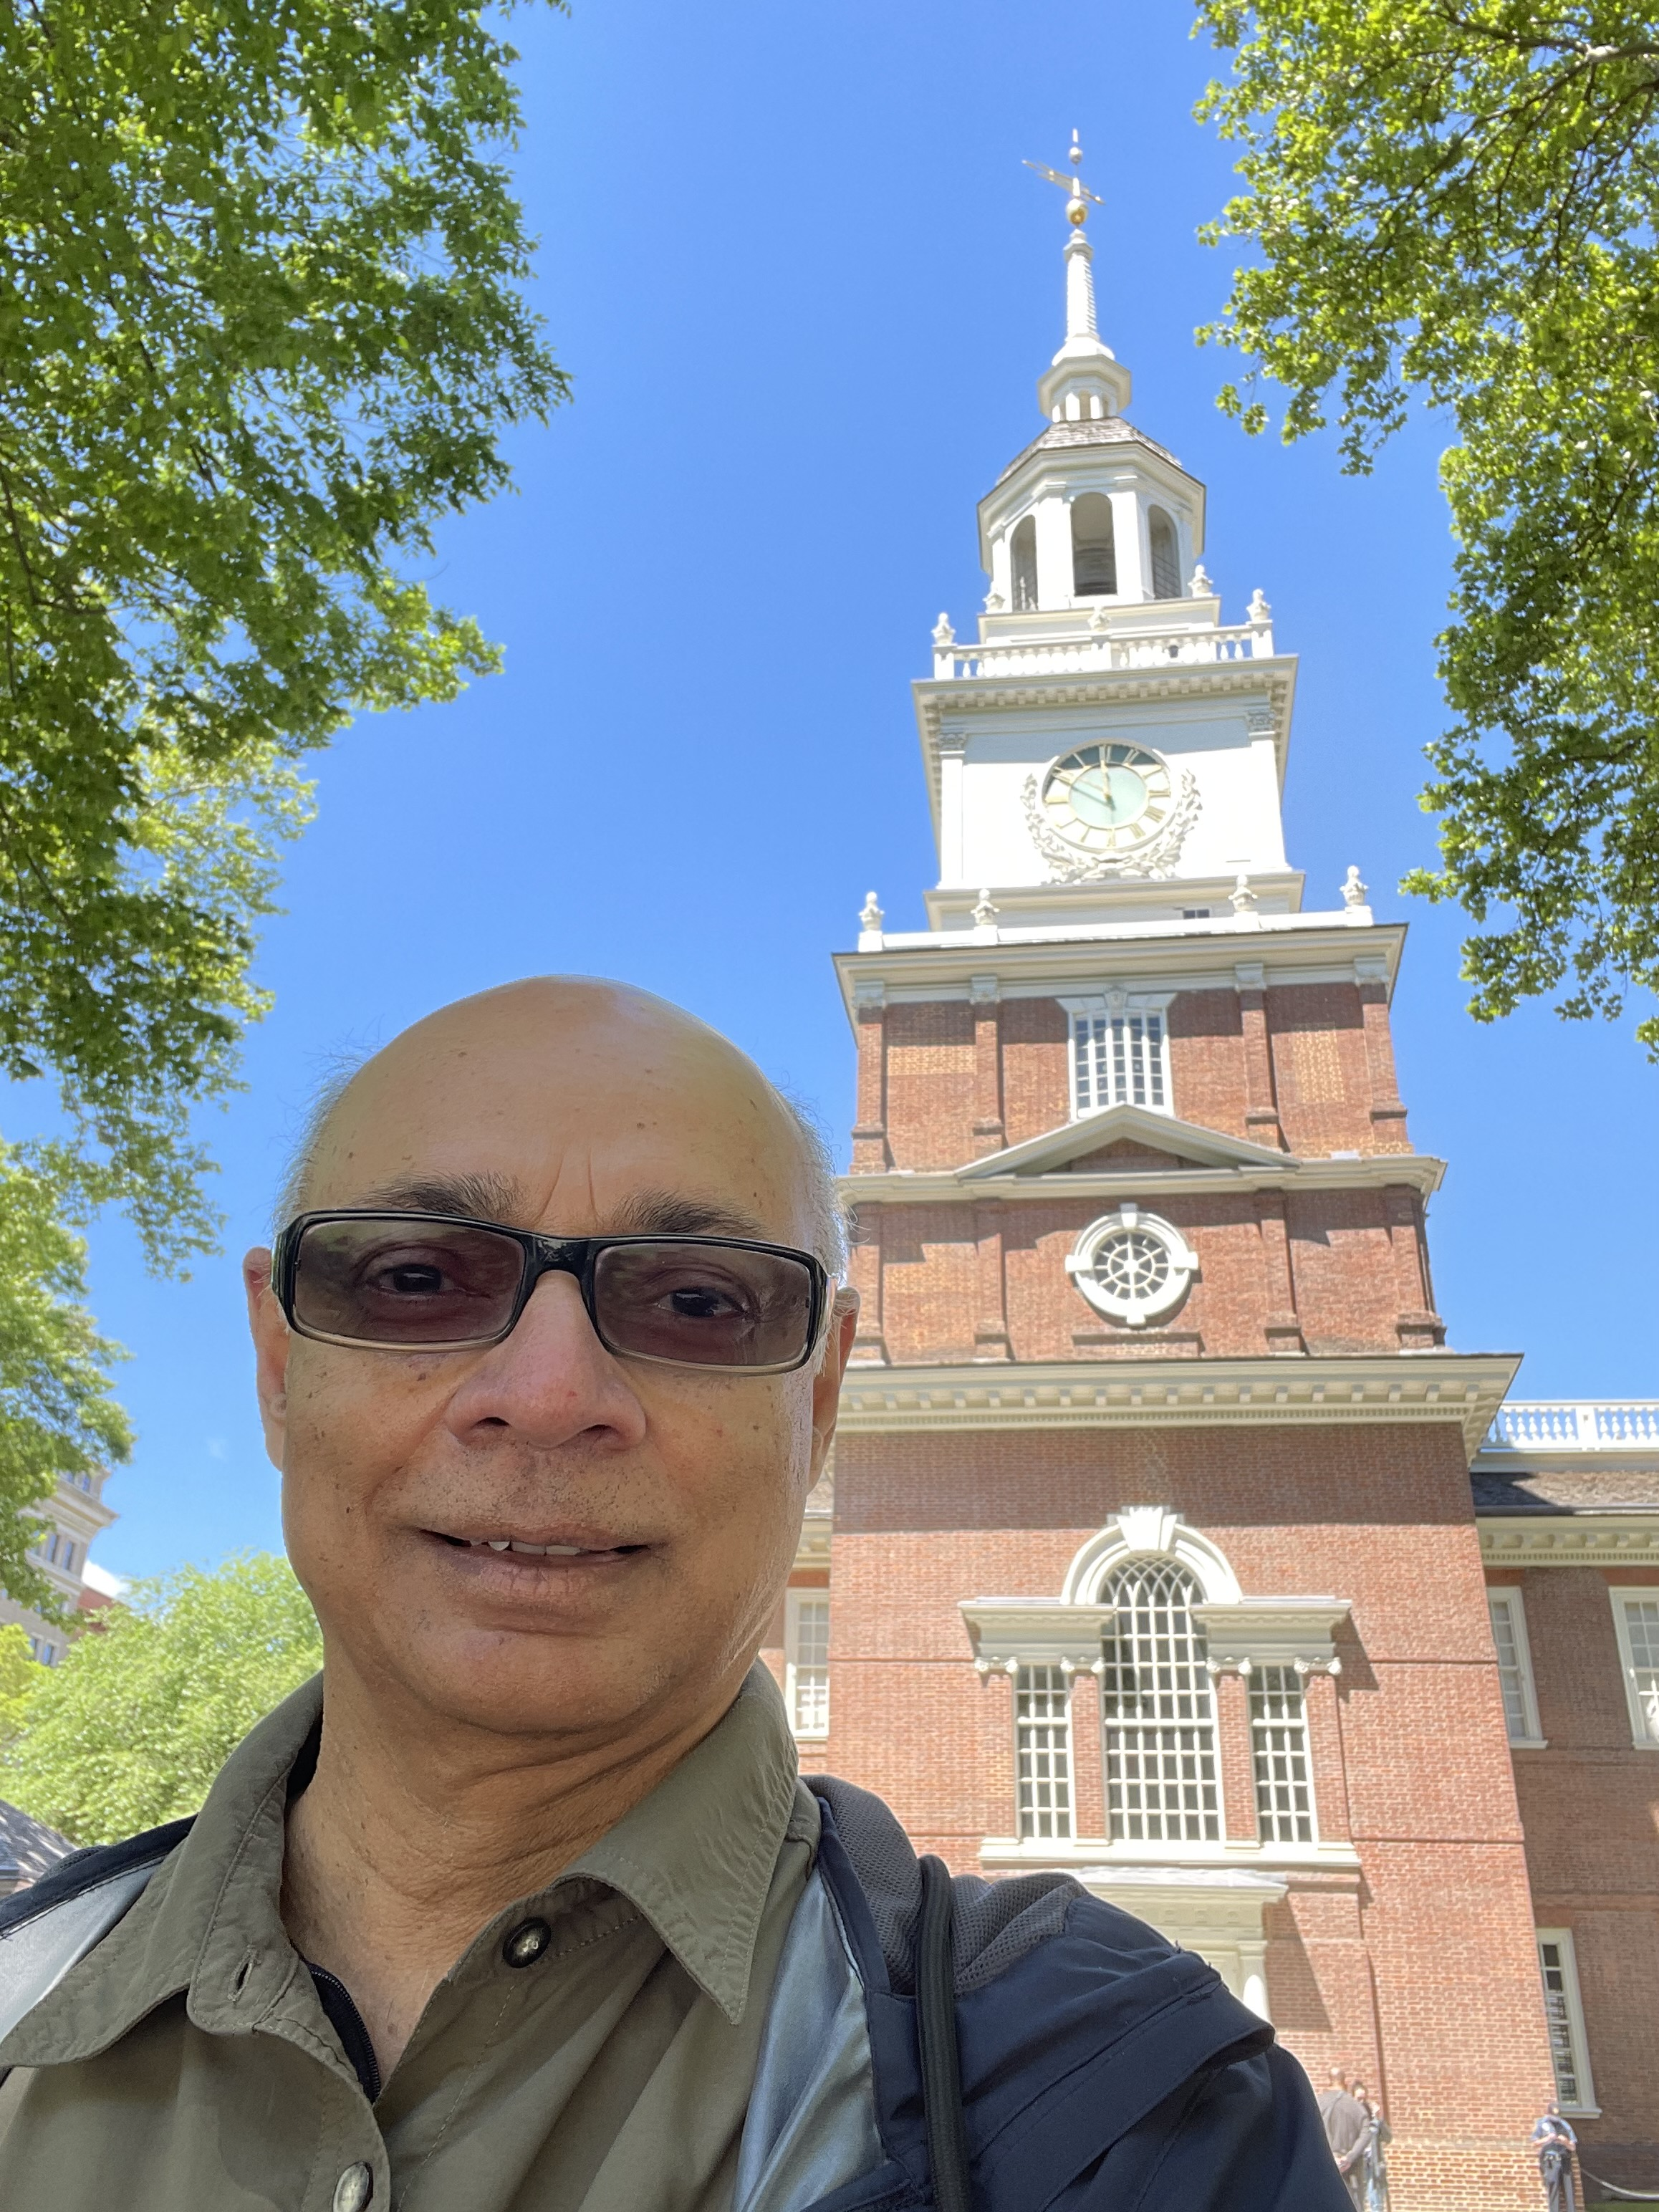 South face of Liberty Bell Tower, Independence Hall